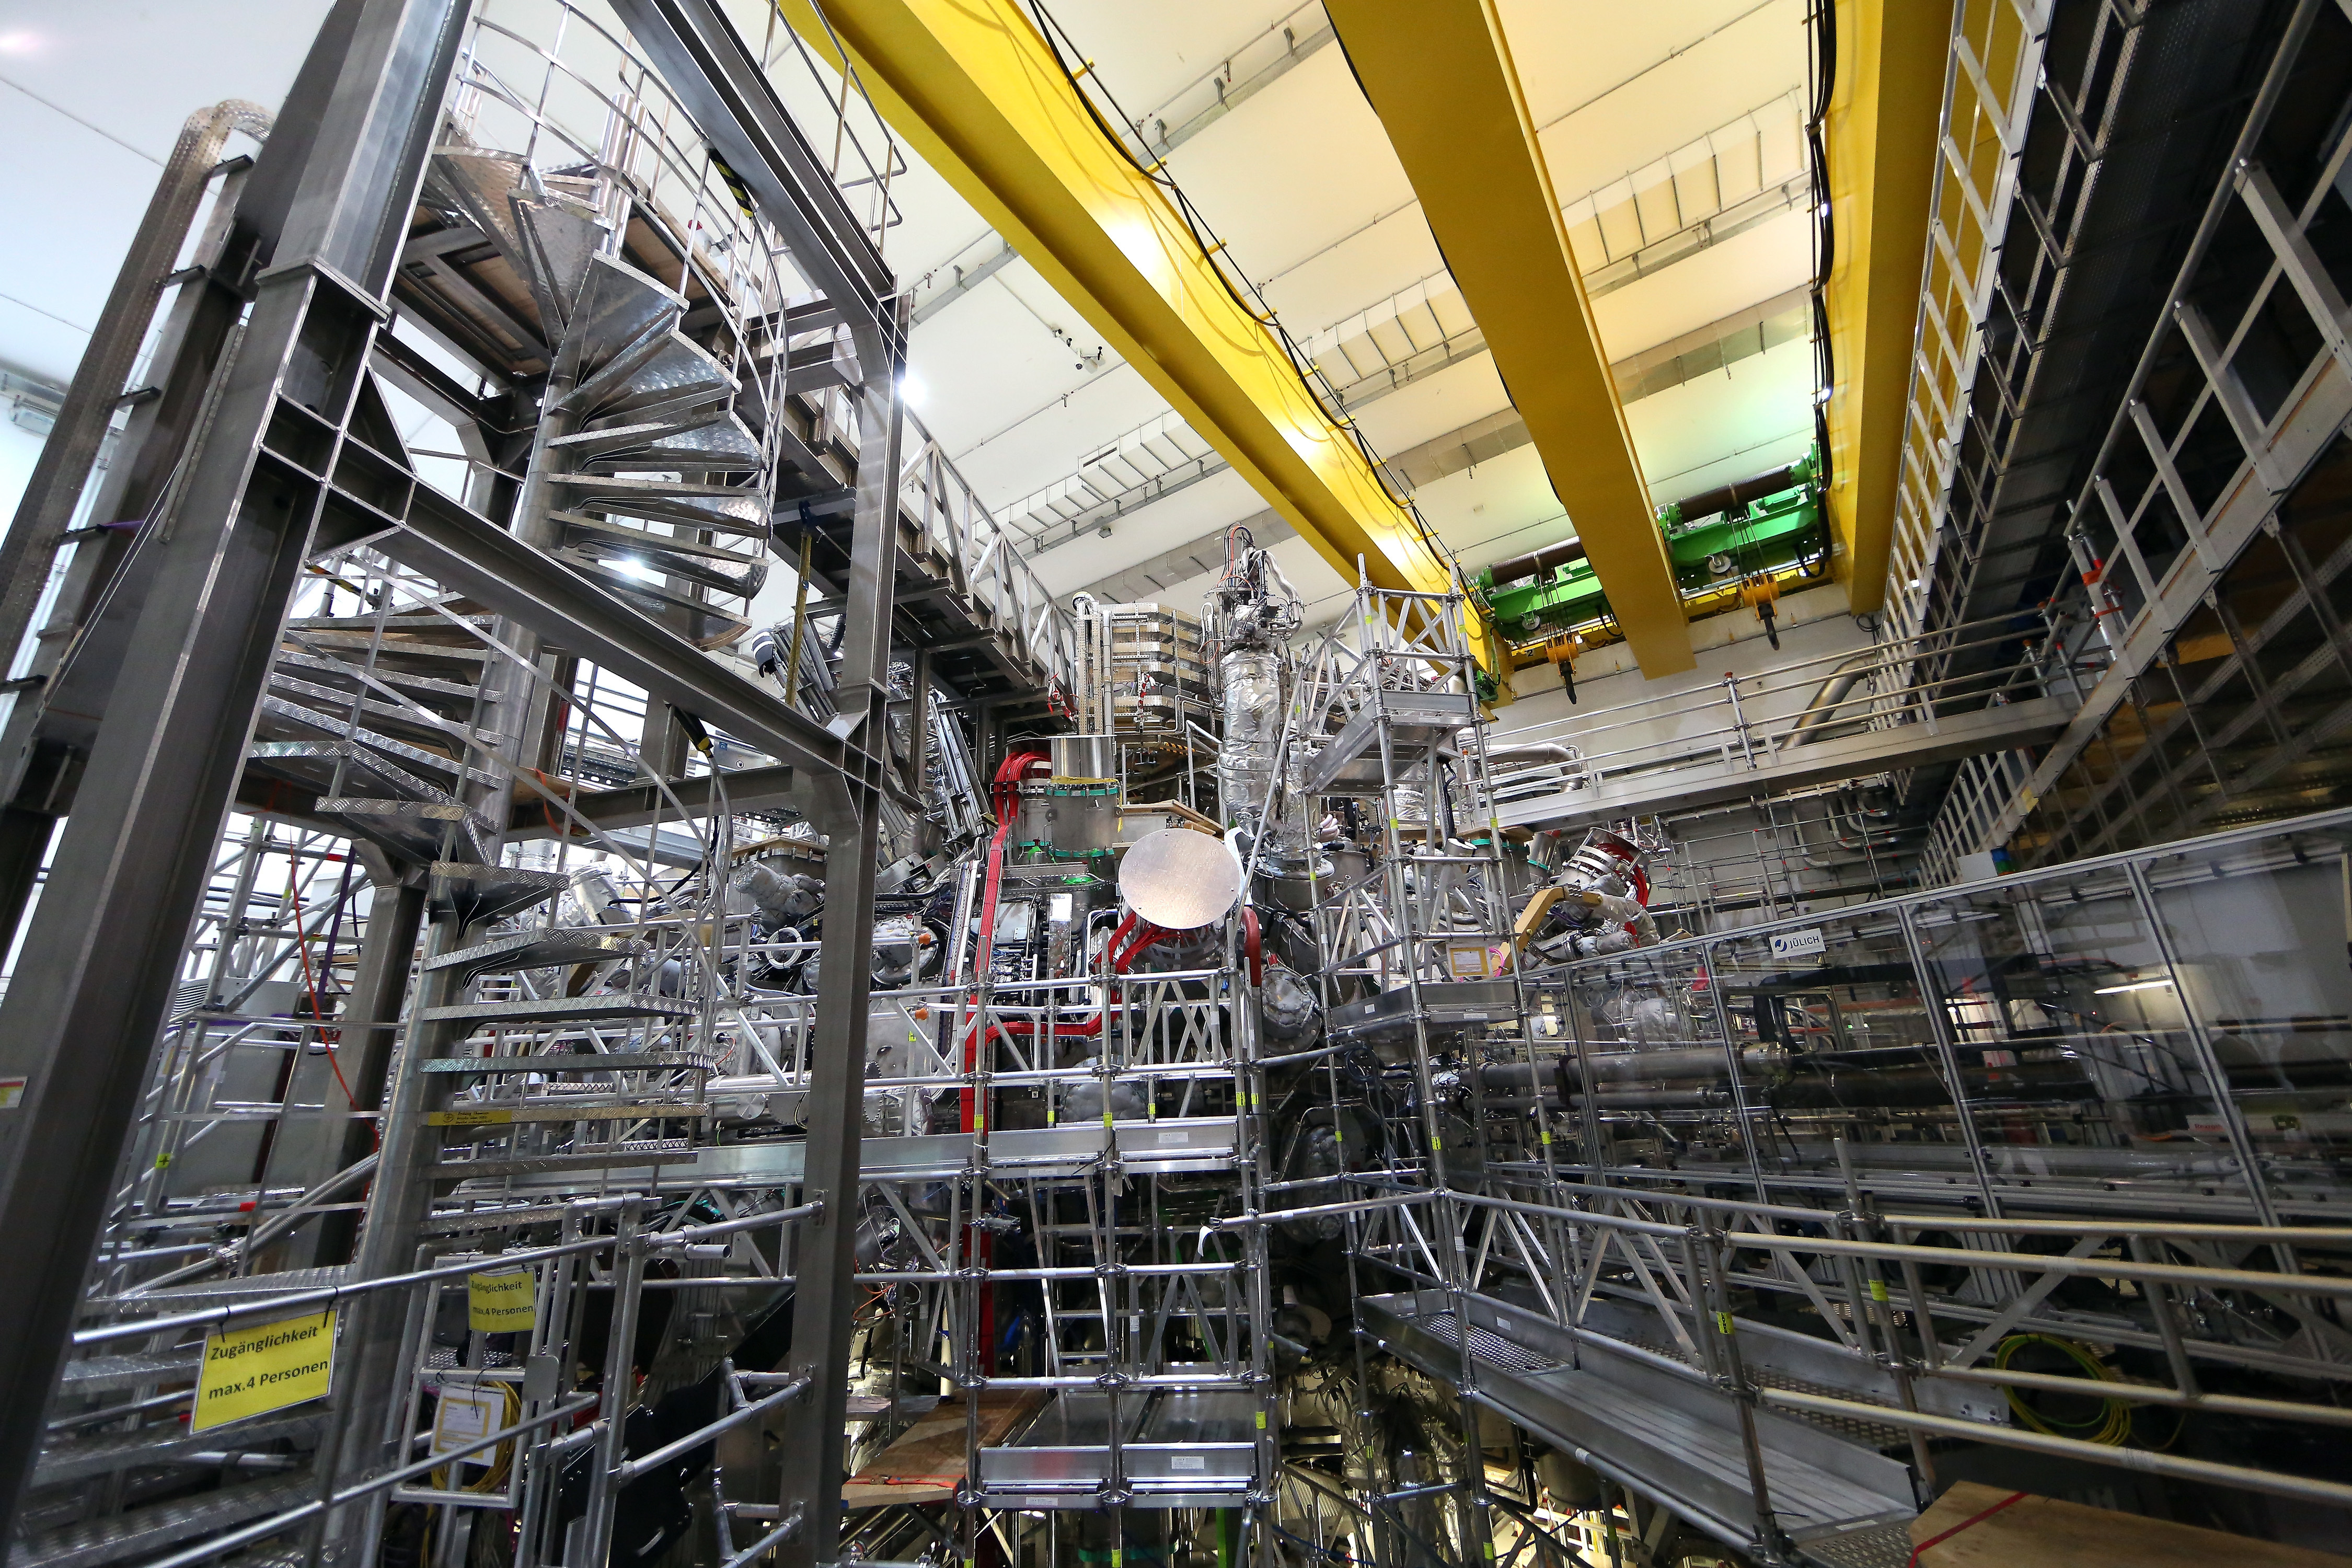 The interior of the new Wendelstein 7-X nuclear fusion experimental device at the Max Planck Institute of Plasma Physics in Greifswald, Germany.